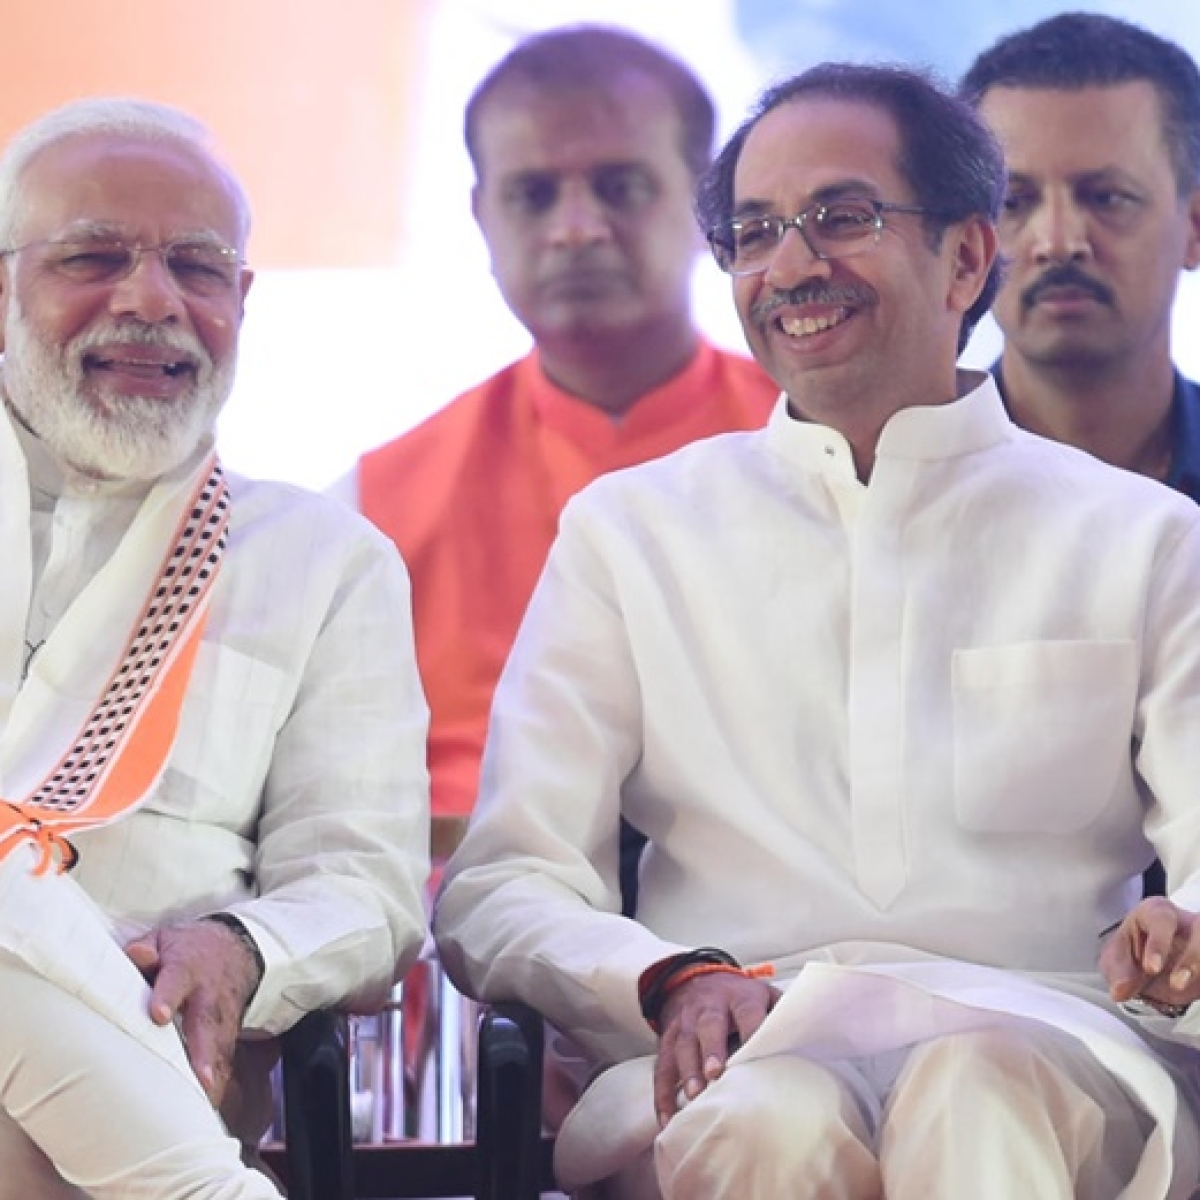 Shiv Sena slams BJP over celebration of 1 year of Modi govt 2.0, says party is behaving as if no work was done before